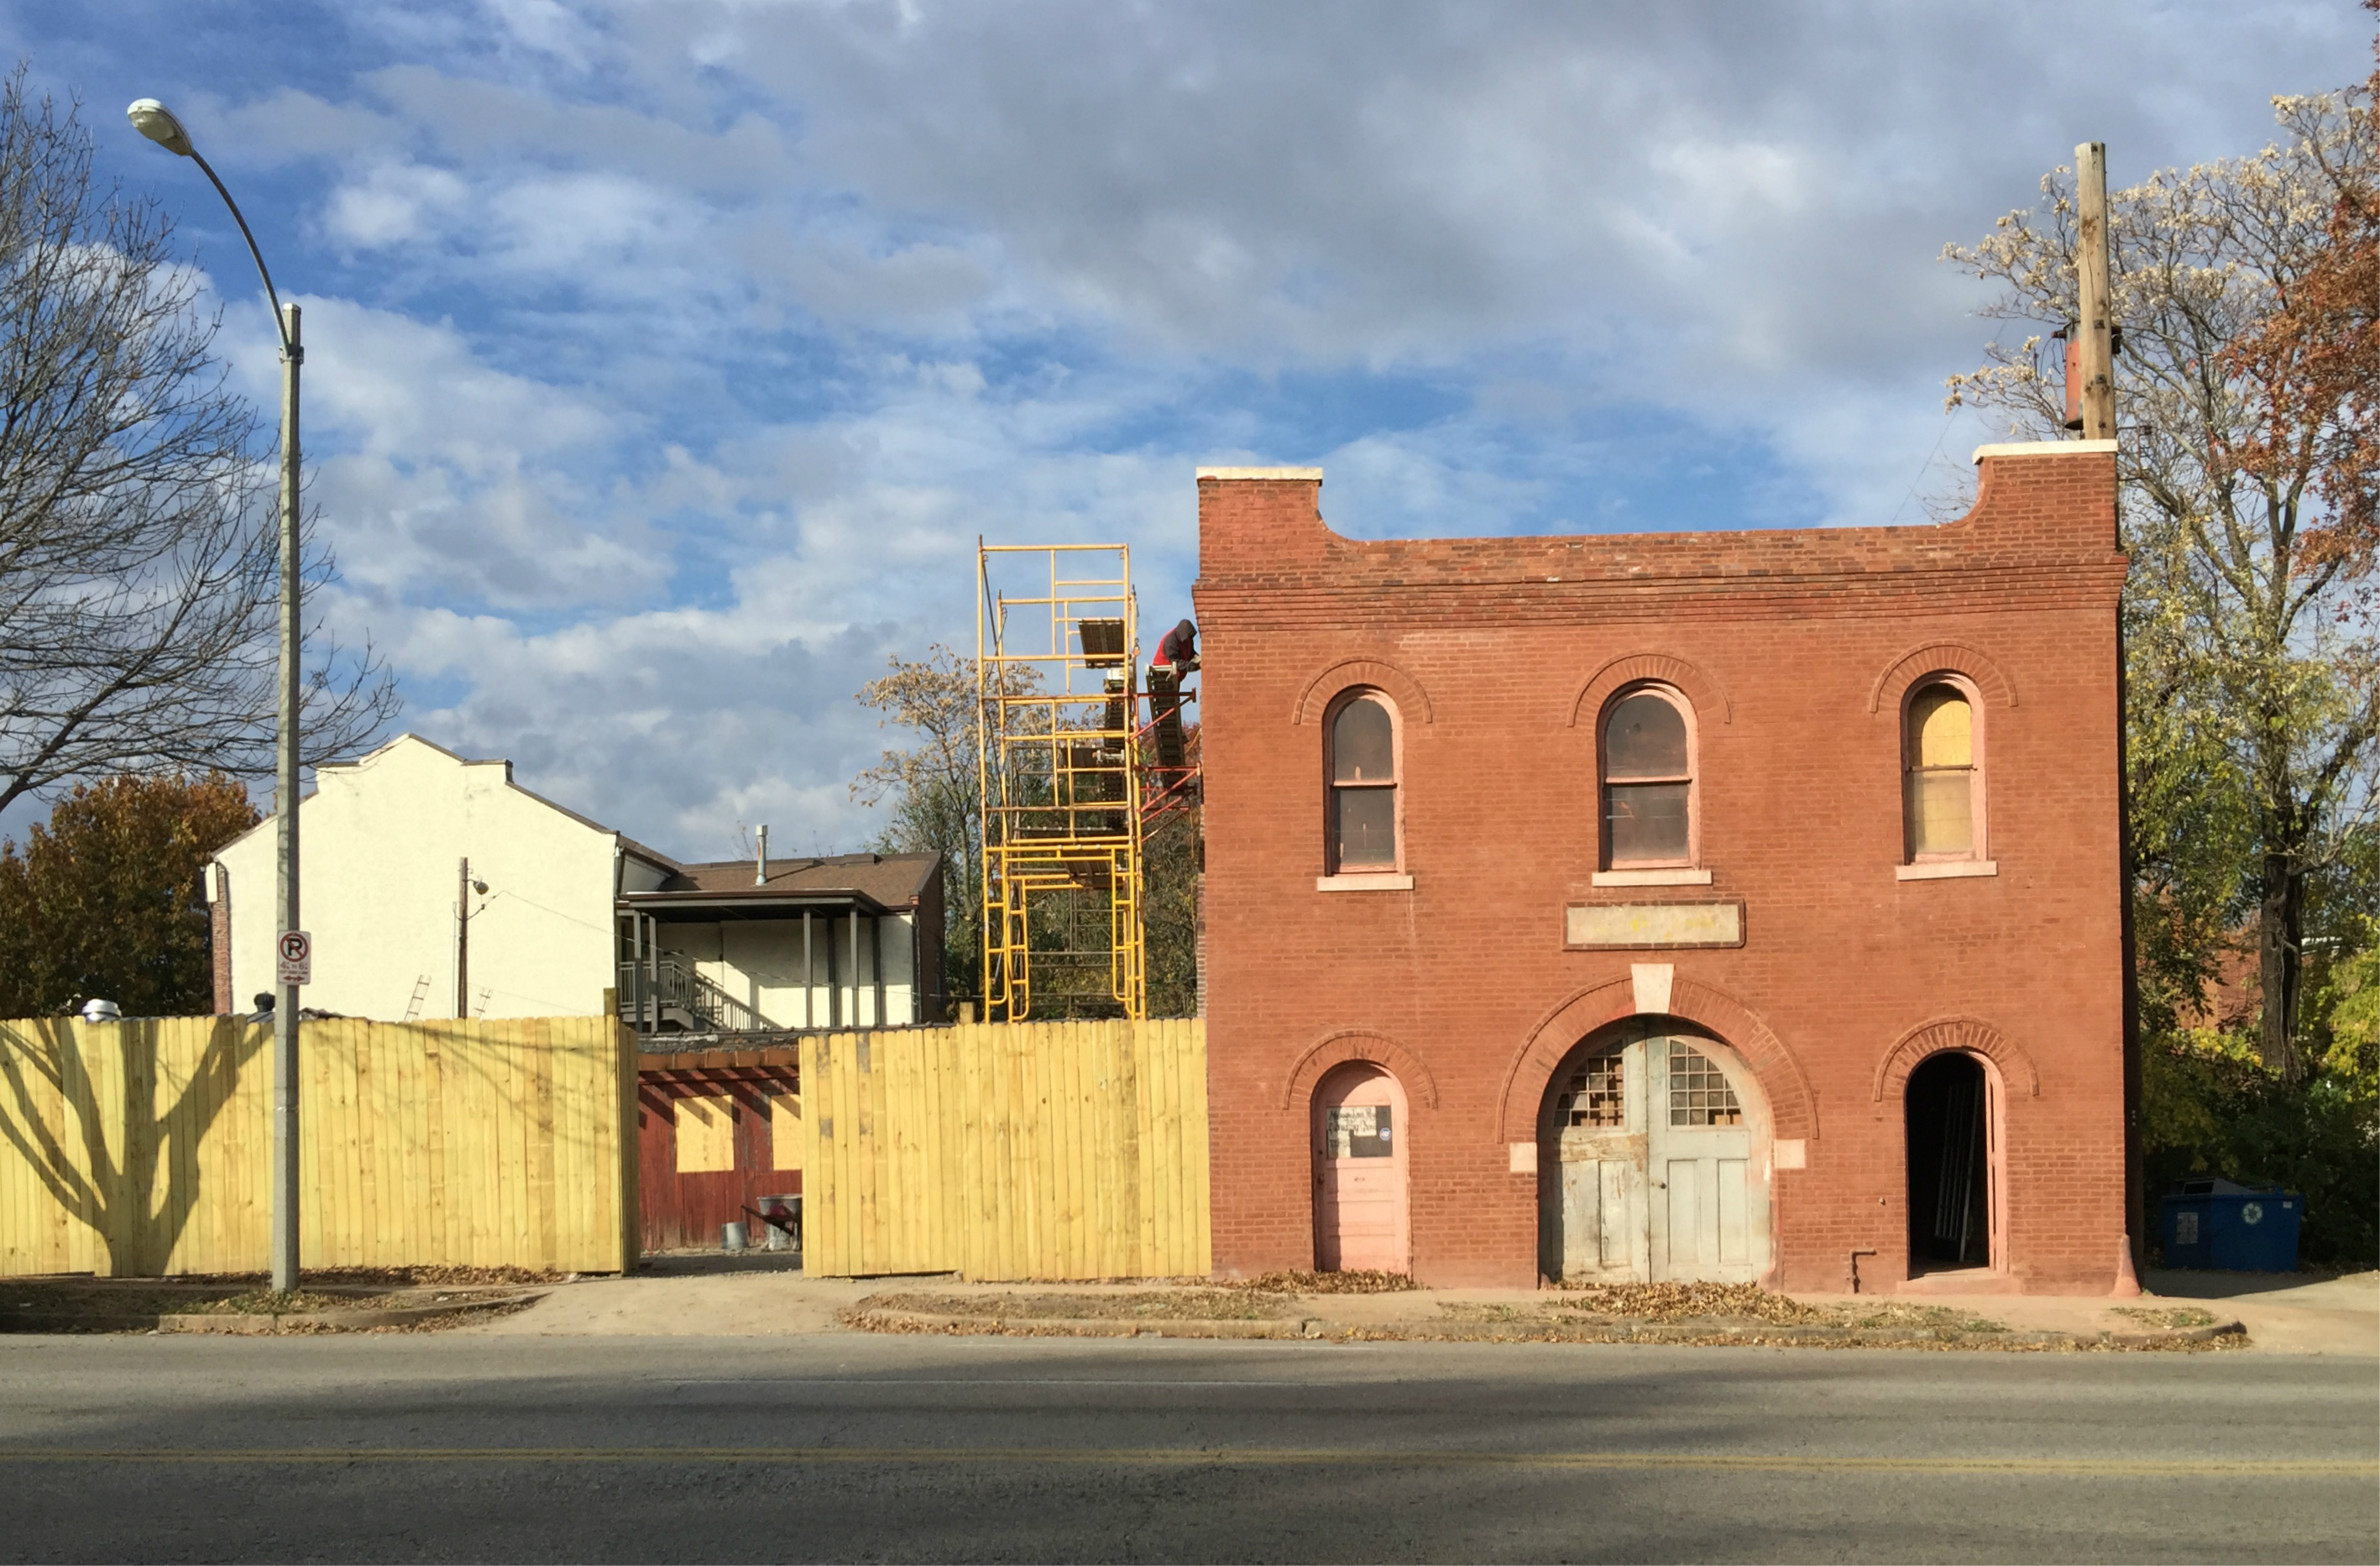 MLK Construction Renovating Vacant Building for New HQ in Gate District